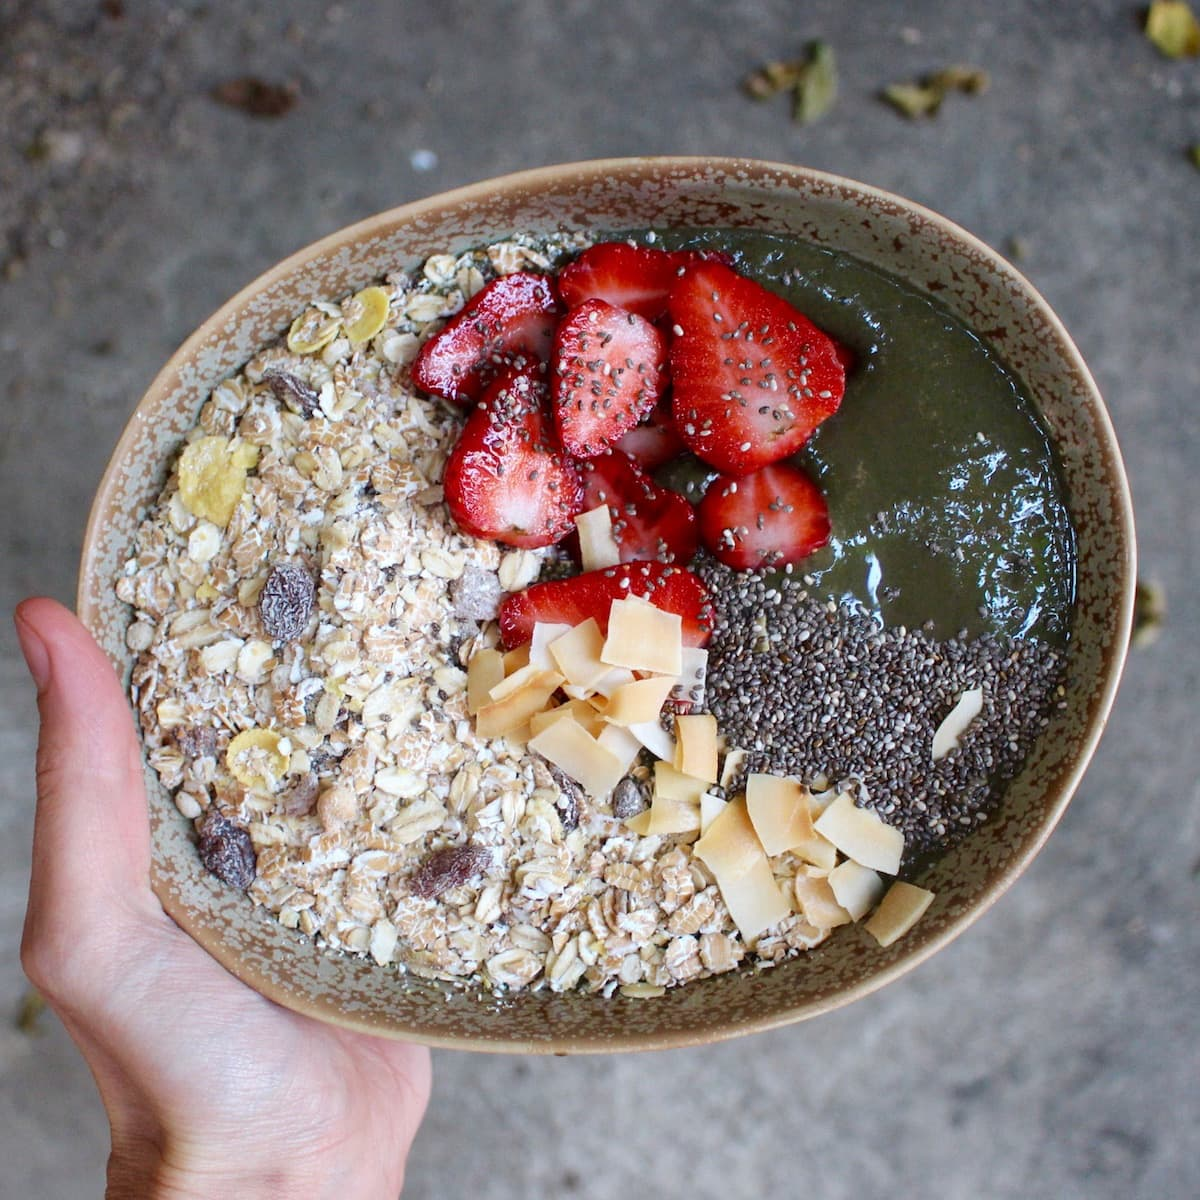 Green smoothie bowl topped with muesli, strawberries and coconut flakes